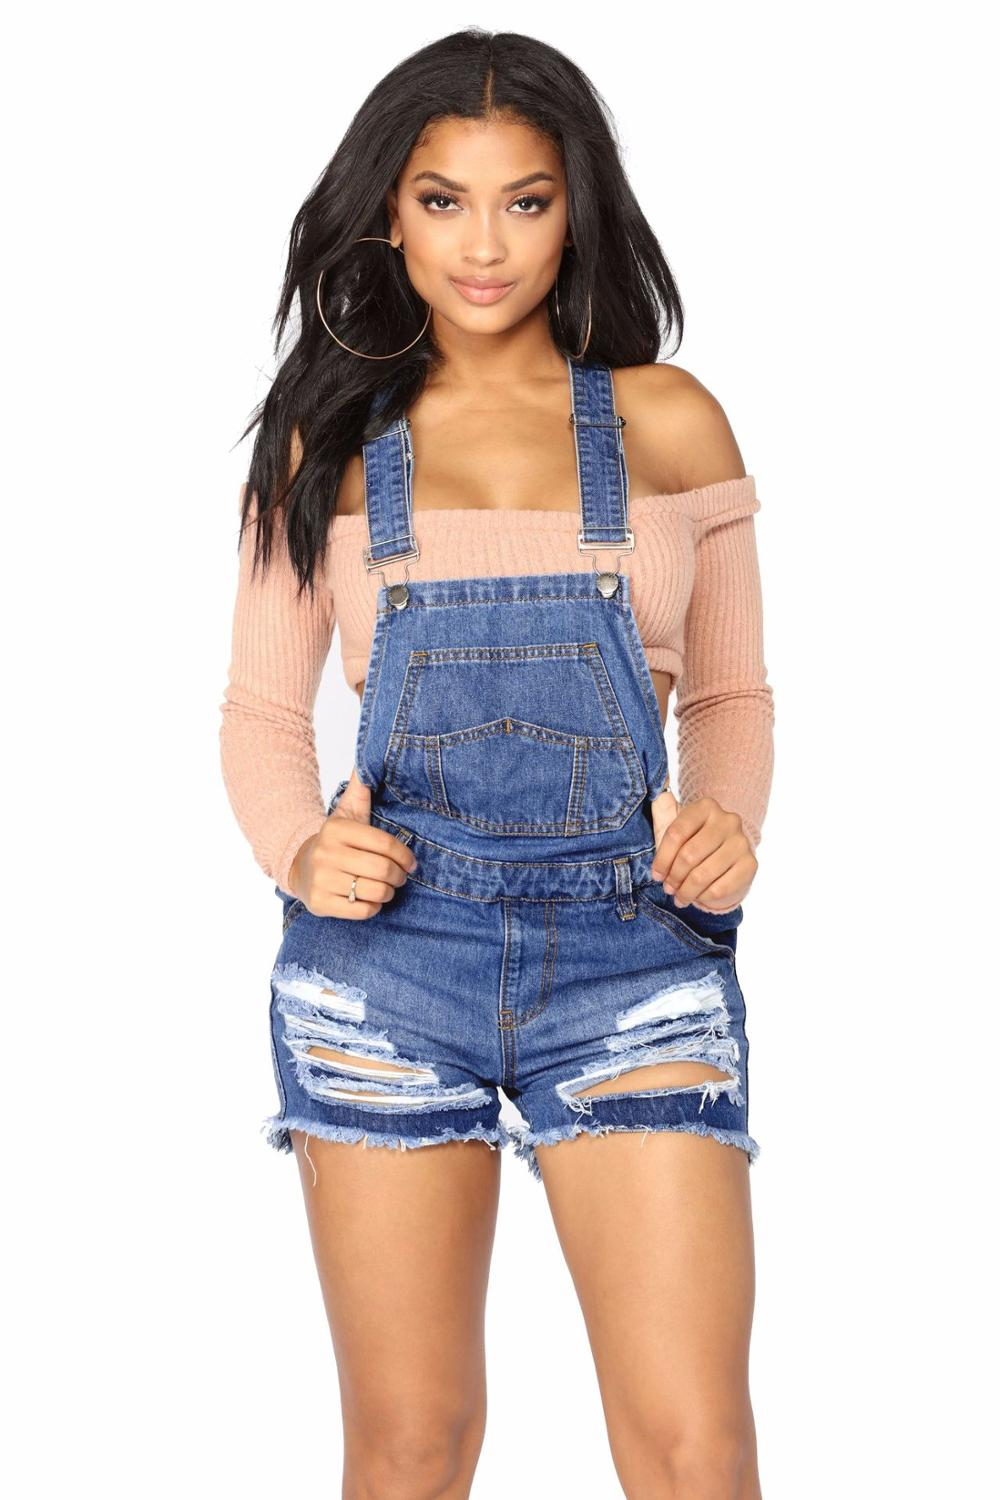 Women Summer Denim Bib Overalls Jeans Shorts Jumpsuits and Rompers Playsuit 1